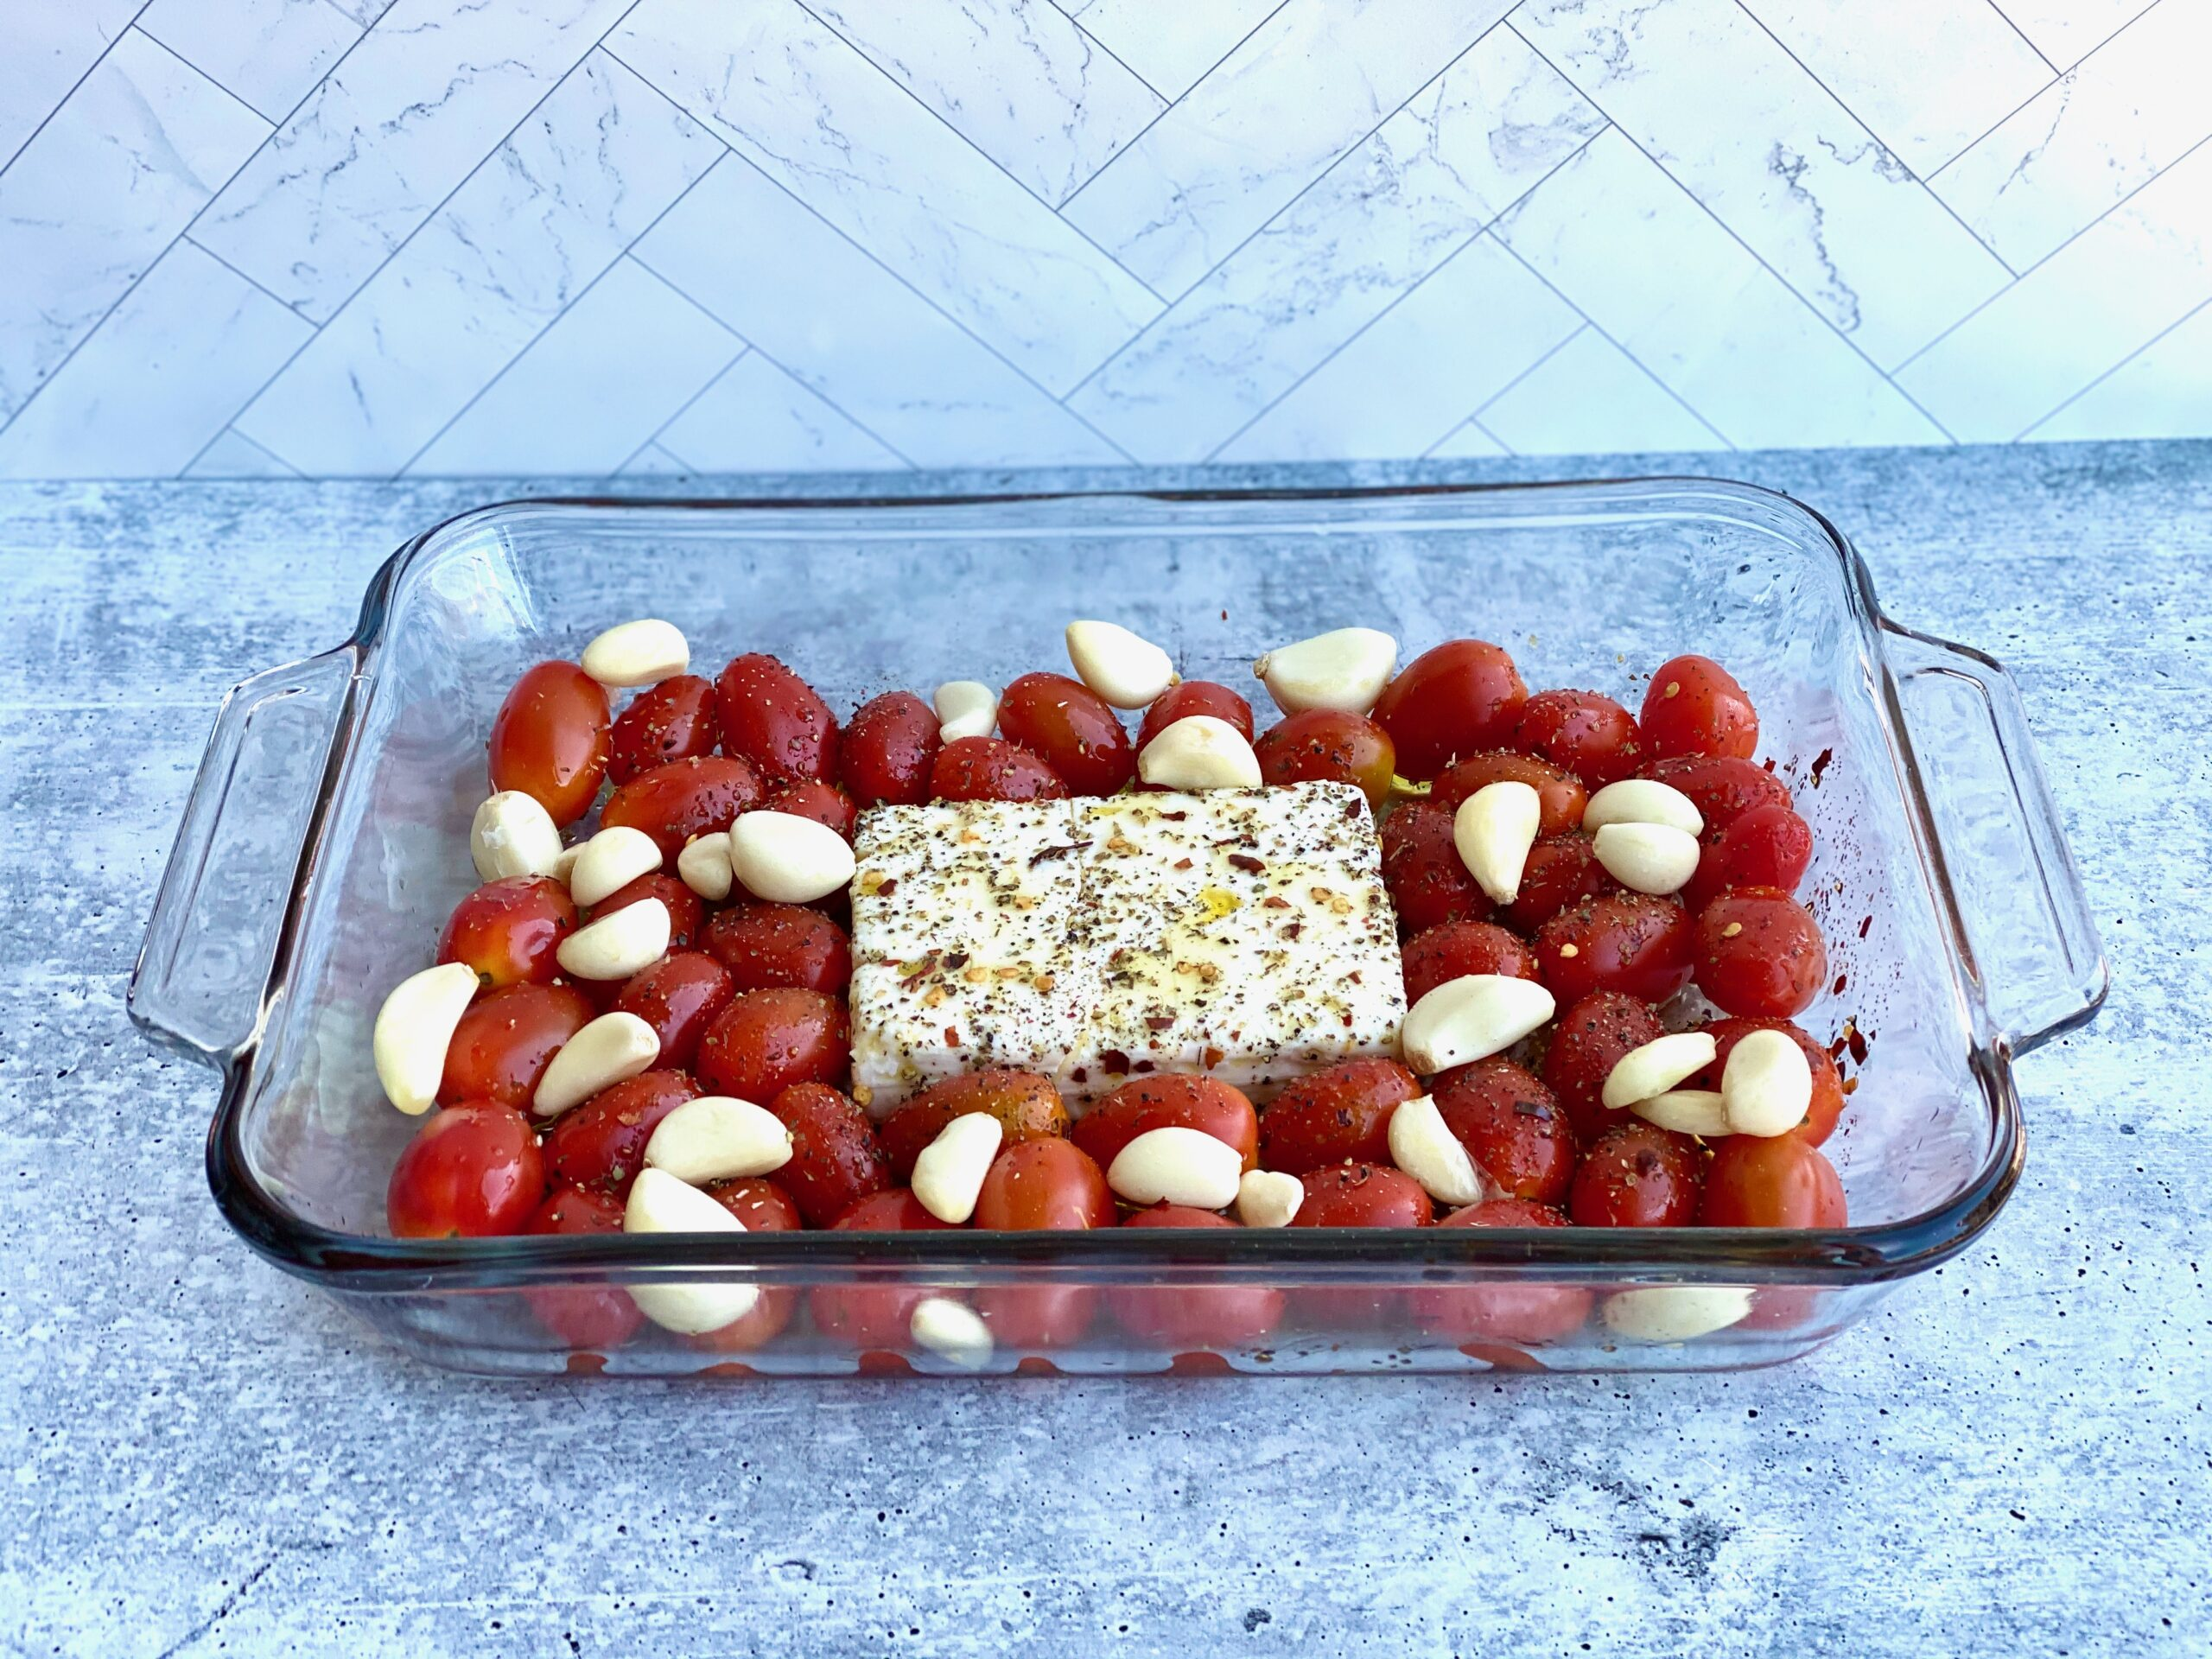 Image of feta cheese in a baking dish with tomatoes and whole cloves of garlic